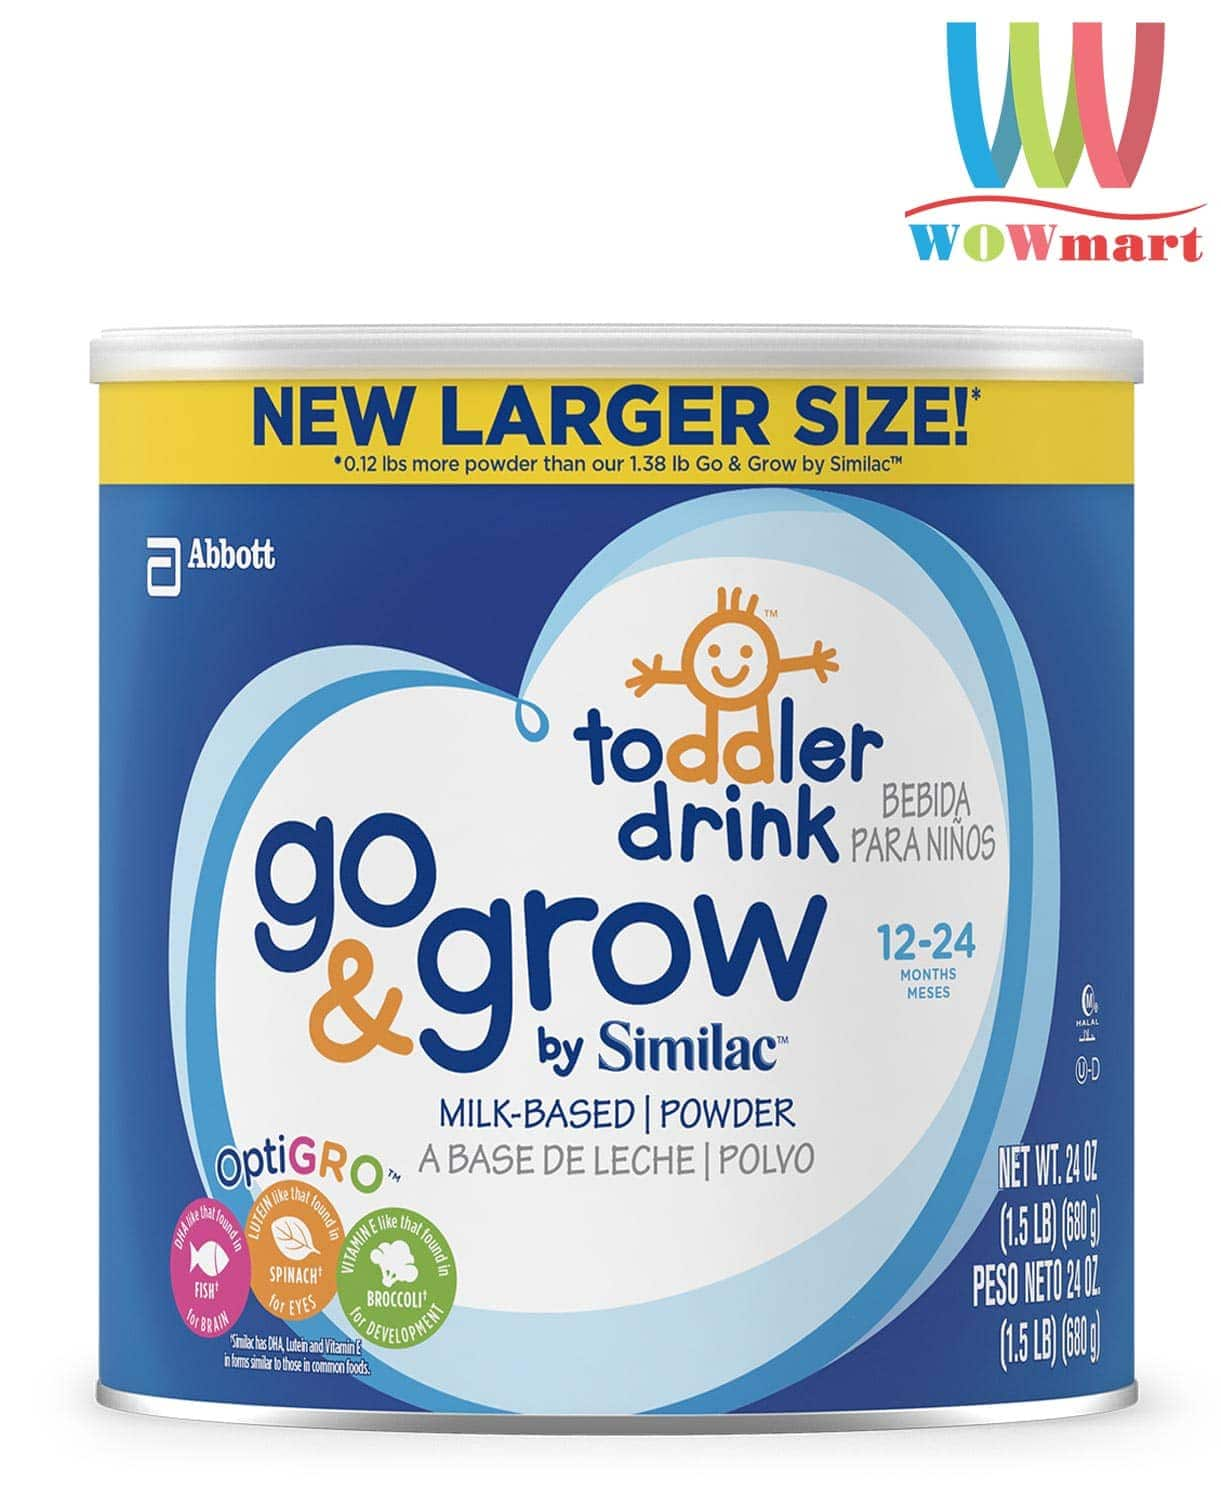 sua-similac-cho-tre-tu-12-24-thang-tuoi-similac-go-grow-milk-based-toddler-drink-680g